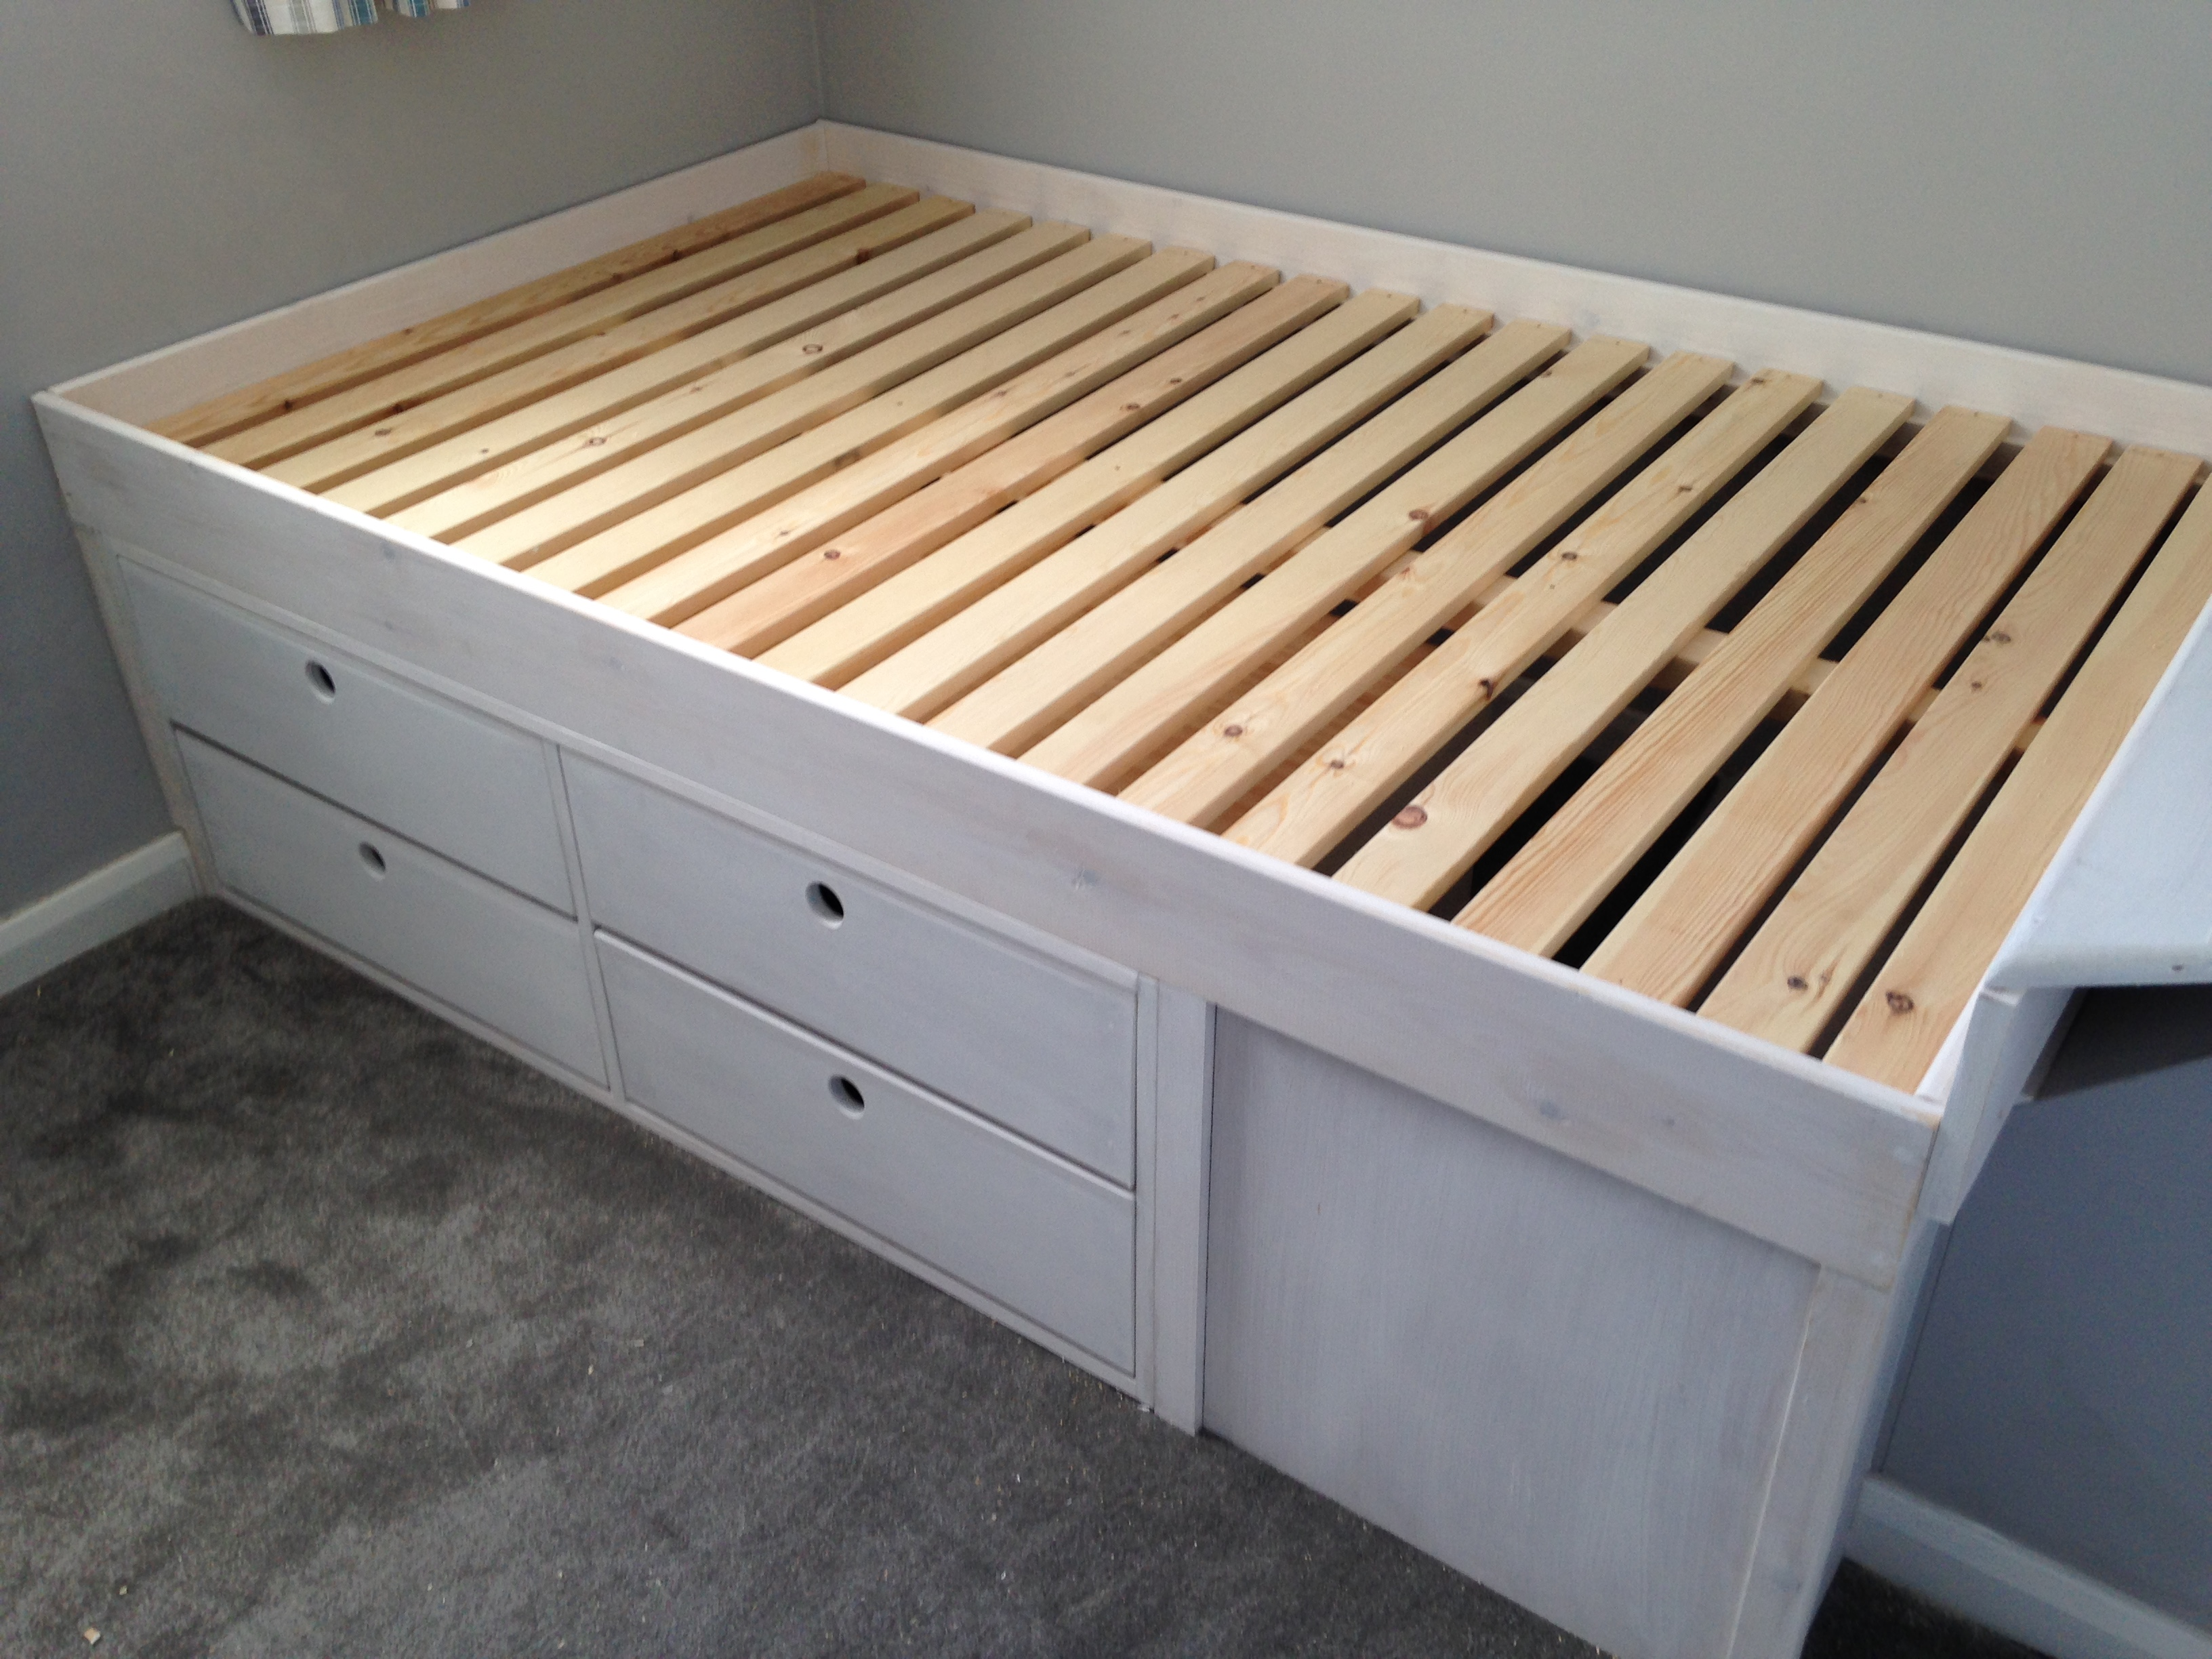 Extra storage under the bed. Great for keeping a house tidy!